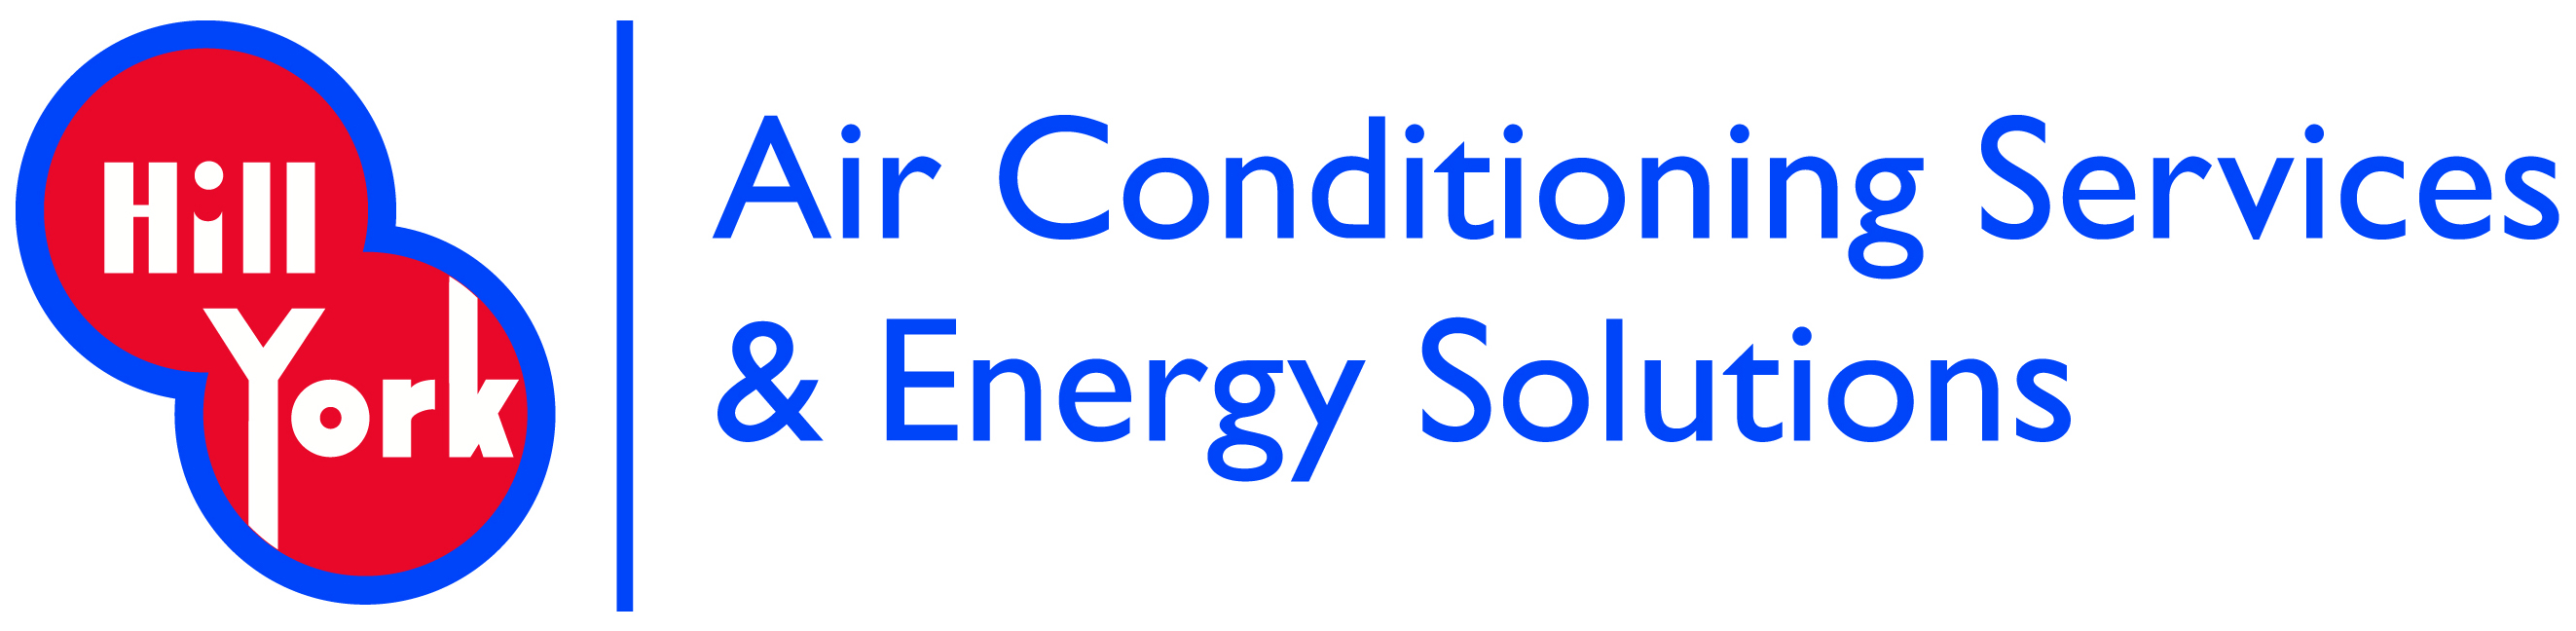 Hill York Air Conditioning Services & Energy Solutions